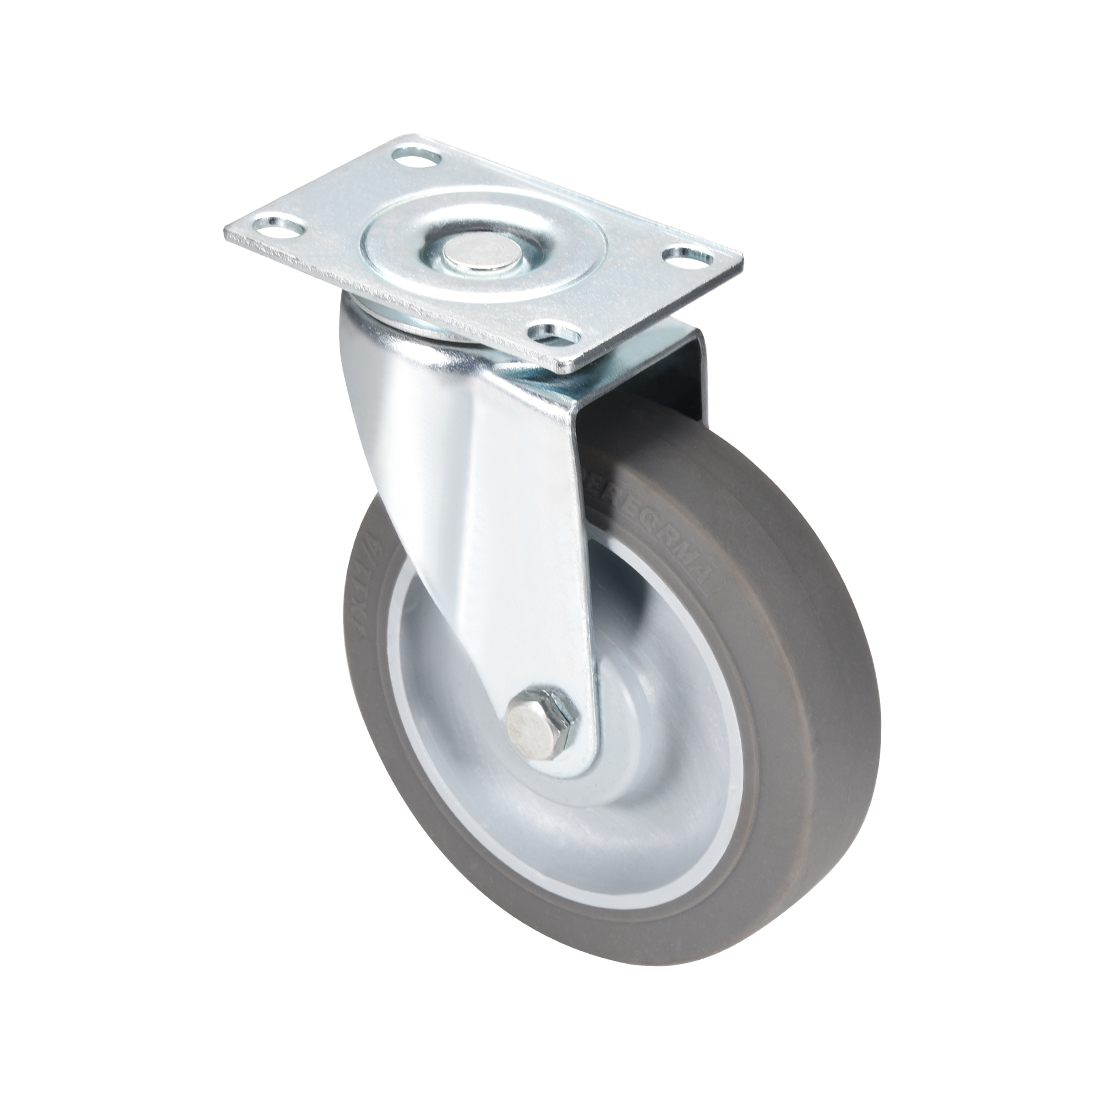 Swivel Caster Wheels 4inch TPR Caster Top Plate Mounted 242lb Capacity